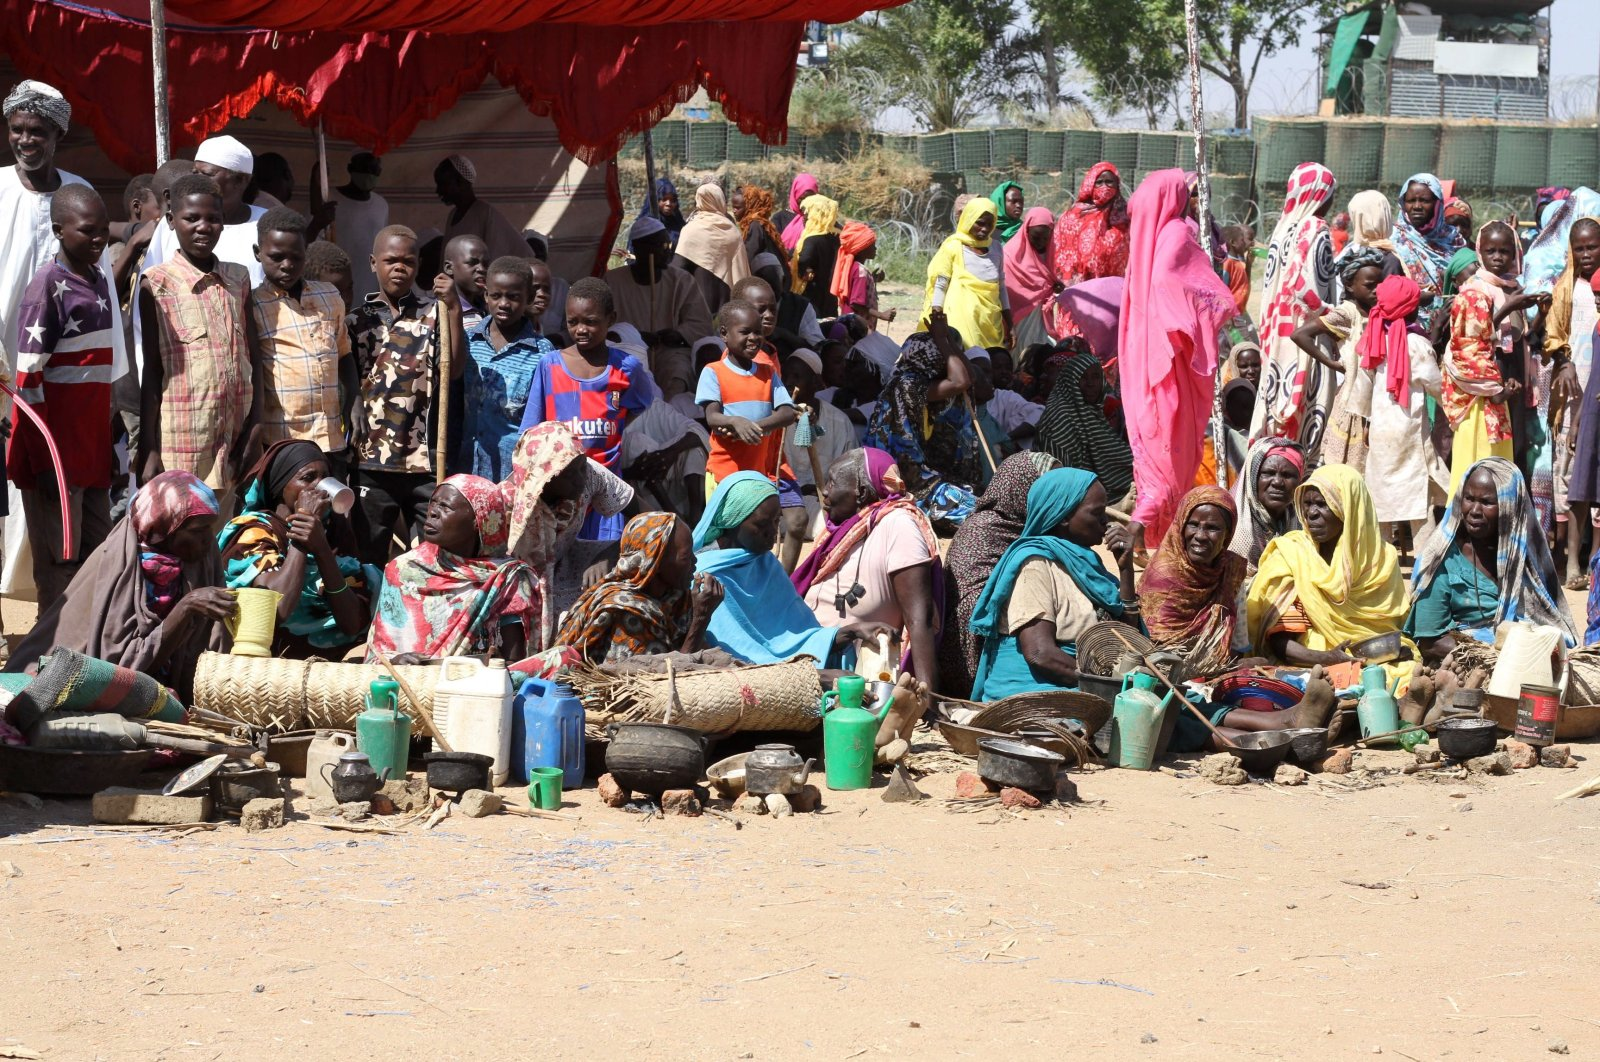 Sudanese internally displaced people stage a sit-in to protest the end of the African Union-United Nations Hybrid Operation in Darfur (UNAMID) mandate, in the Kalma camp in Nyala, the capital of South Darfur, Sudan, Dec. 30, 2020. (AFP Photo)